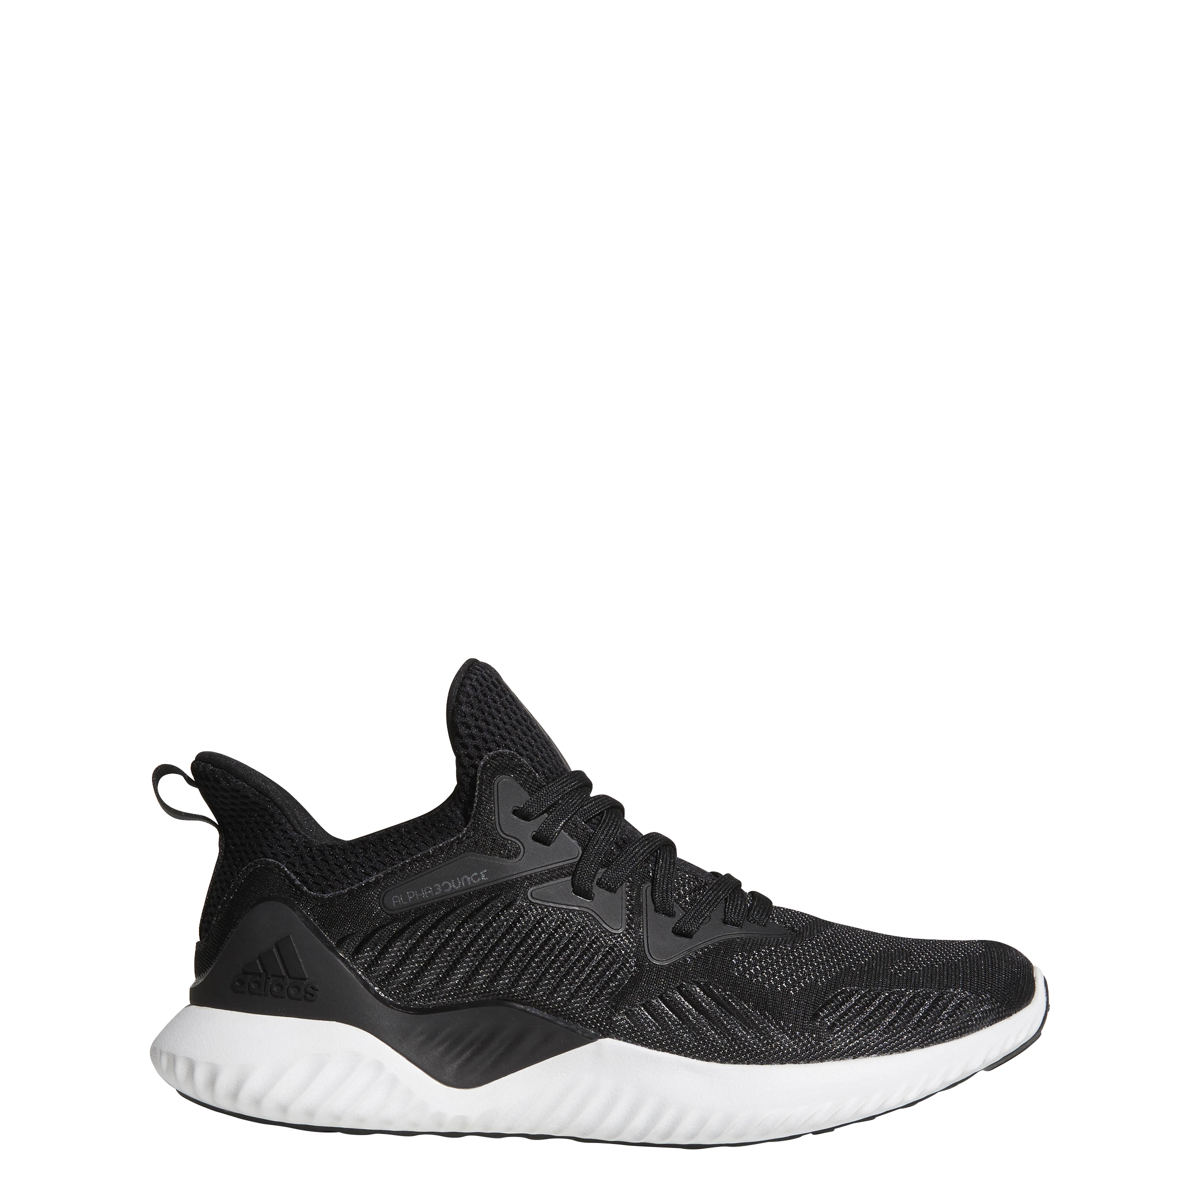 low priced cc867 f26ee Details about Womens Adidas Alphabounce Beyond Running Shoe BlackGrey Five